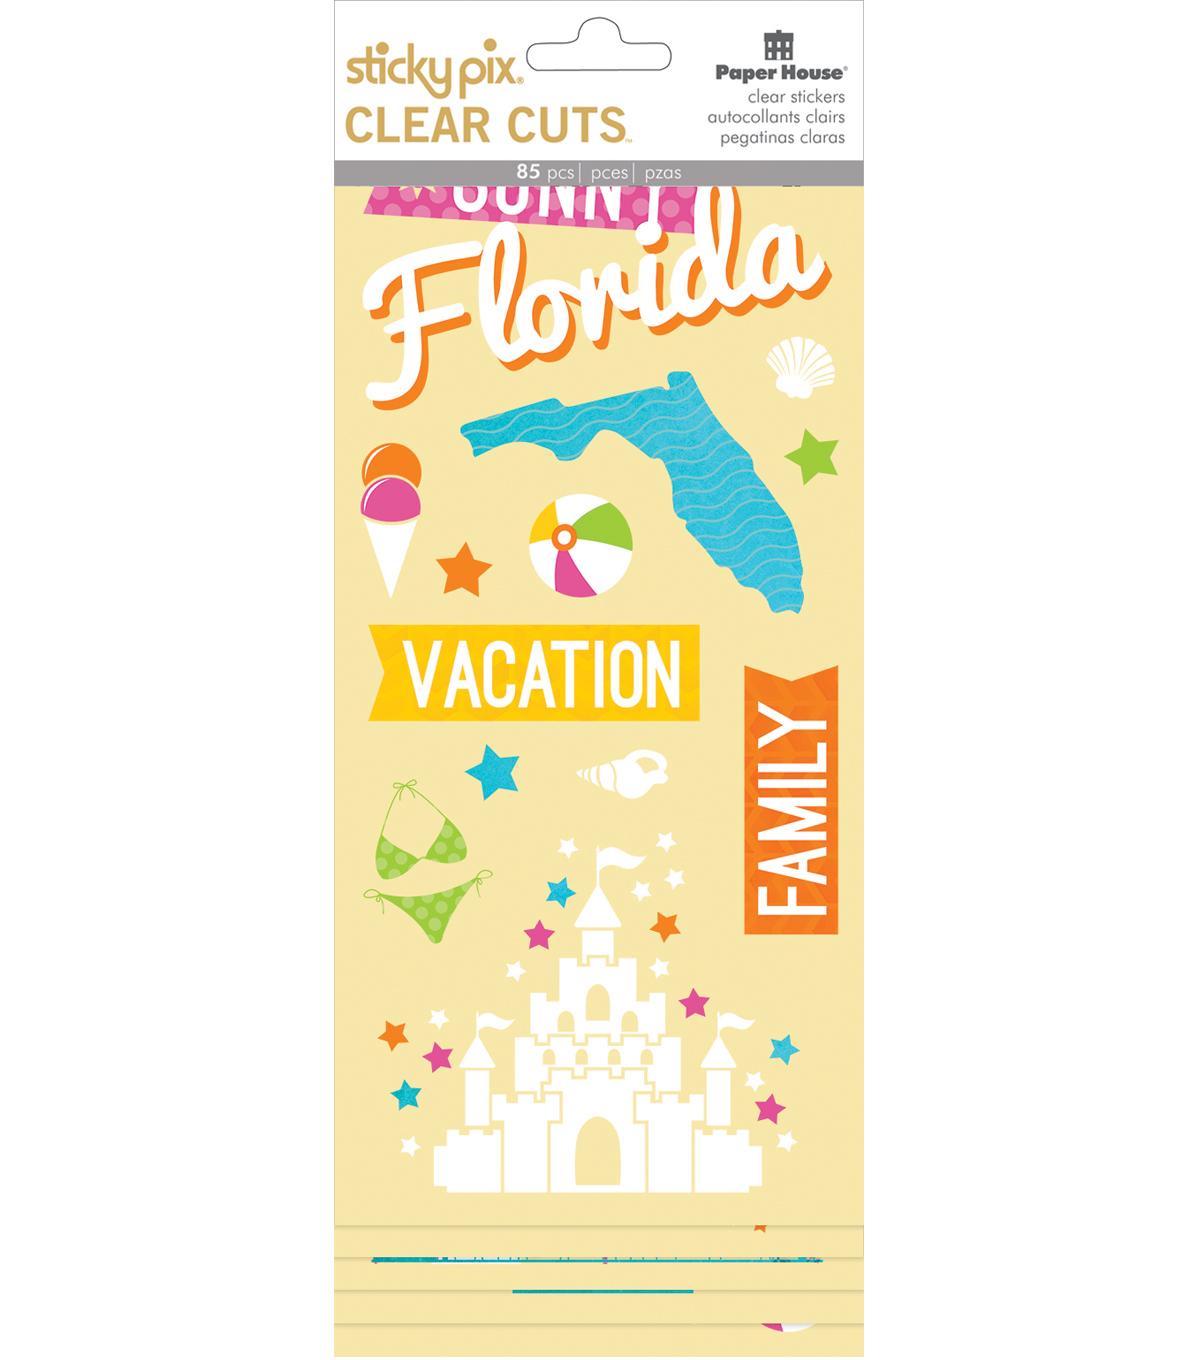 Paper House® Sticky Pix Clear Cuts Pack of 85 Stickers-Florida